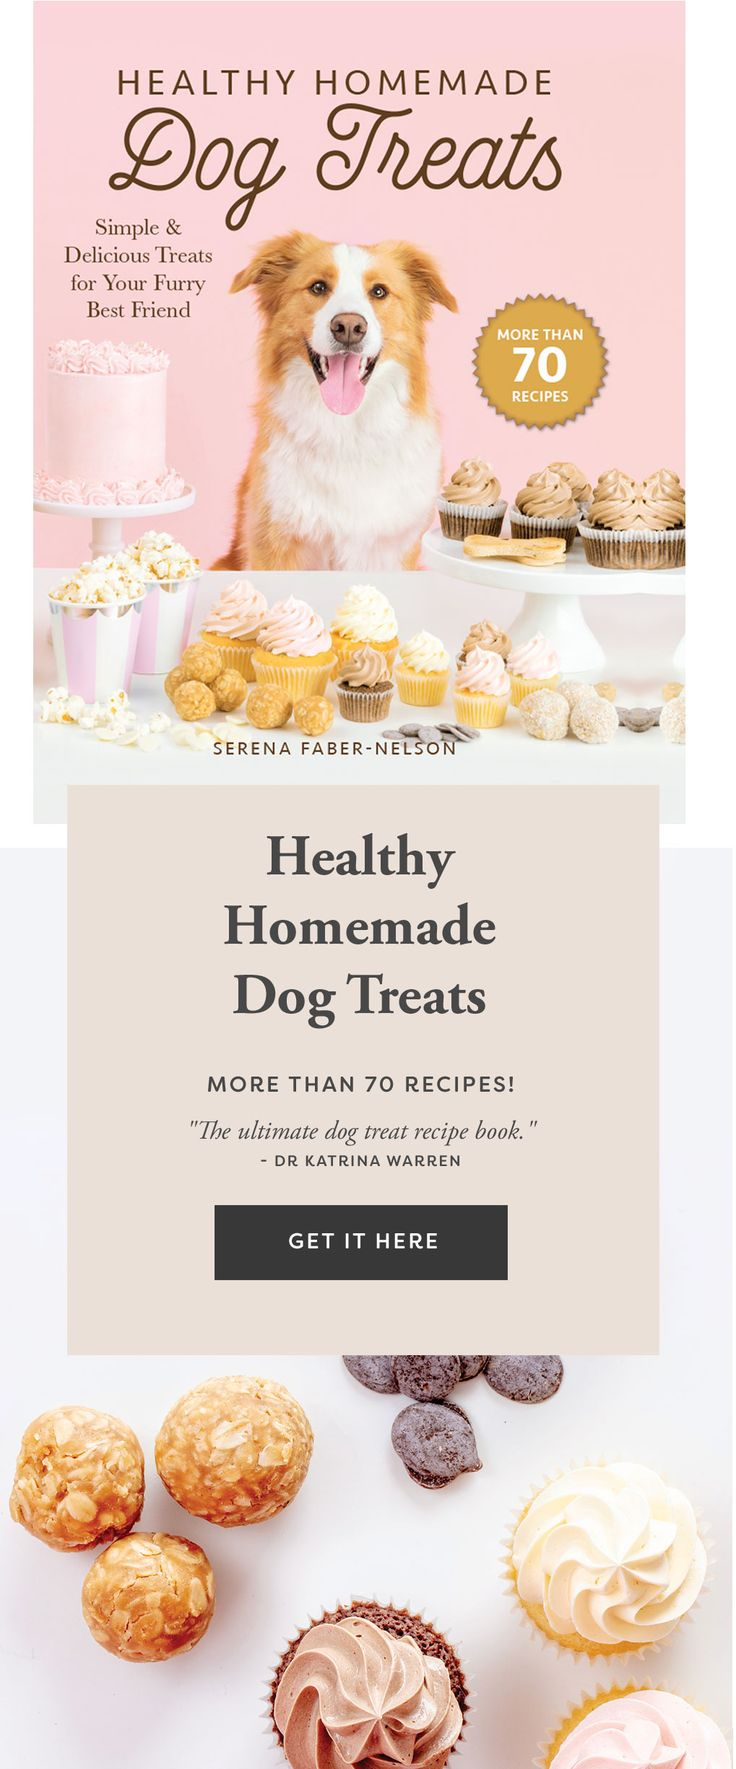 Pretty Fluffy - The ultimate lifestyle blog for the modern pet owner. Featuring celebrity dogs, DIY pet projects, dog photography, luxury pet accessories, and more.